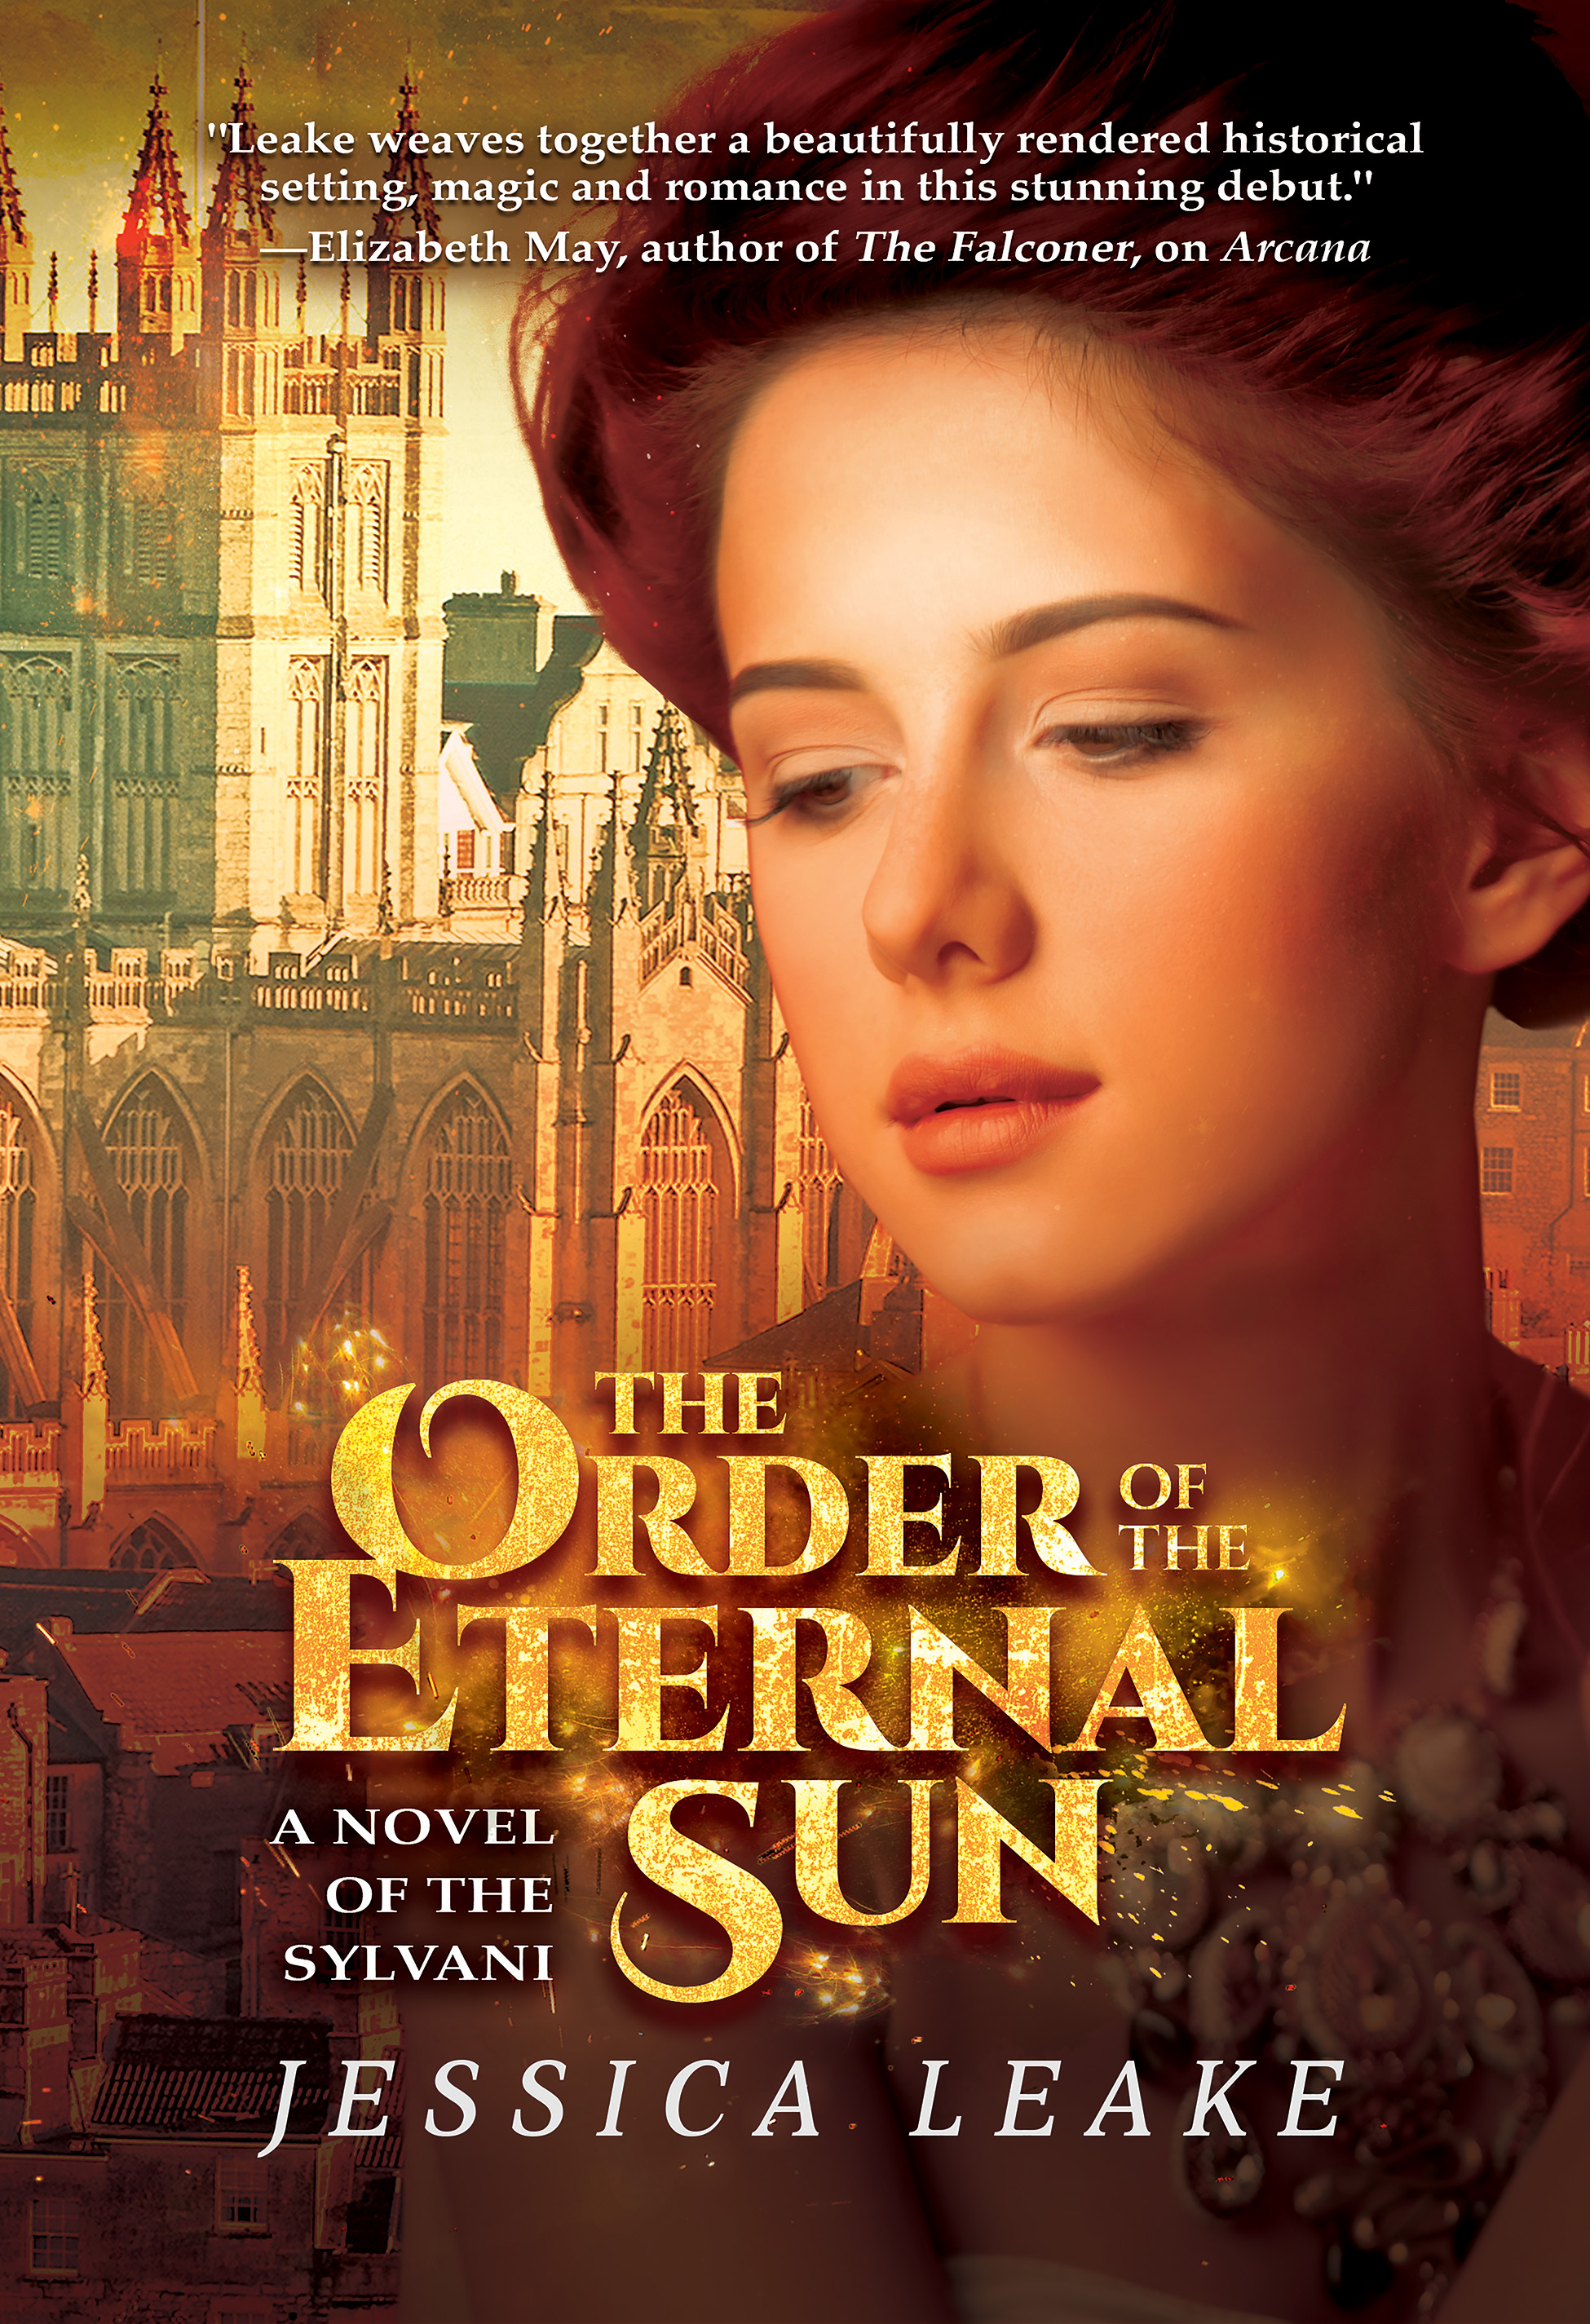 The Order of the Eternal Sun Launch Party